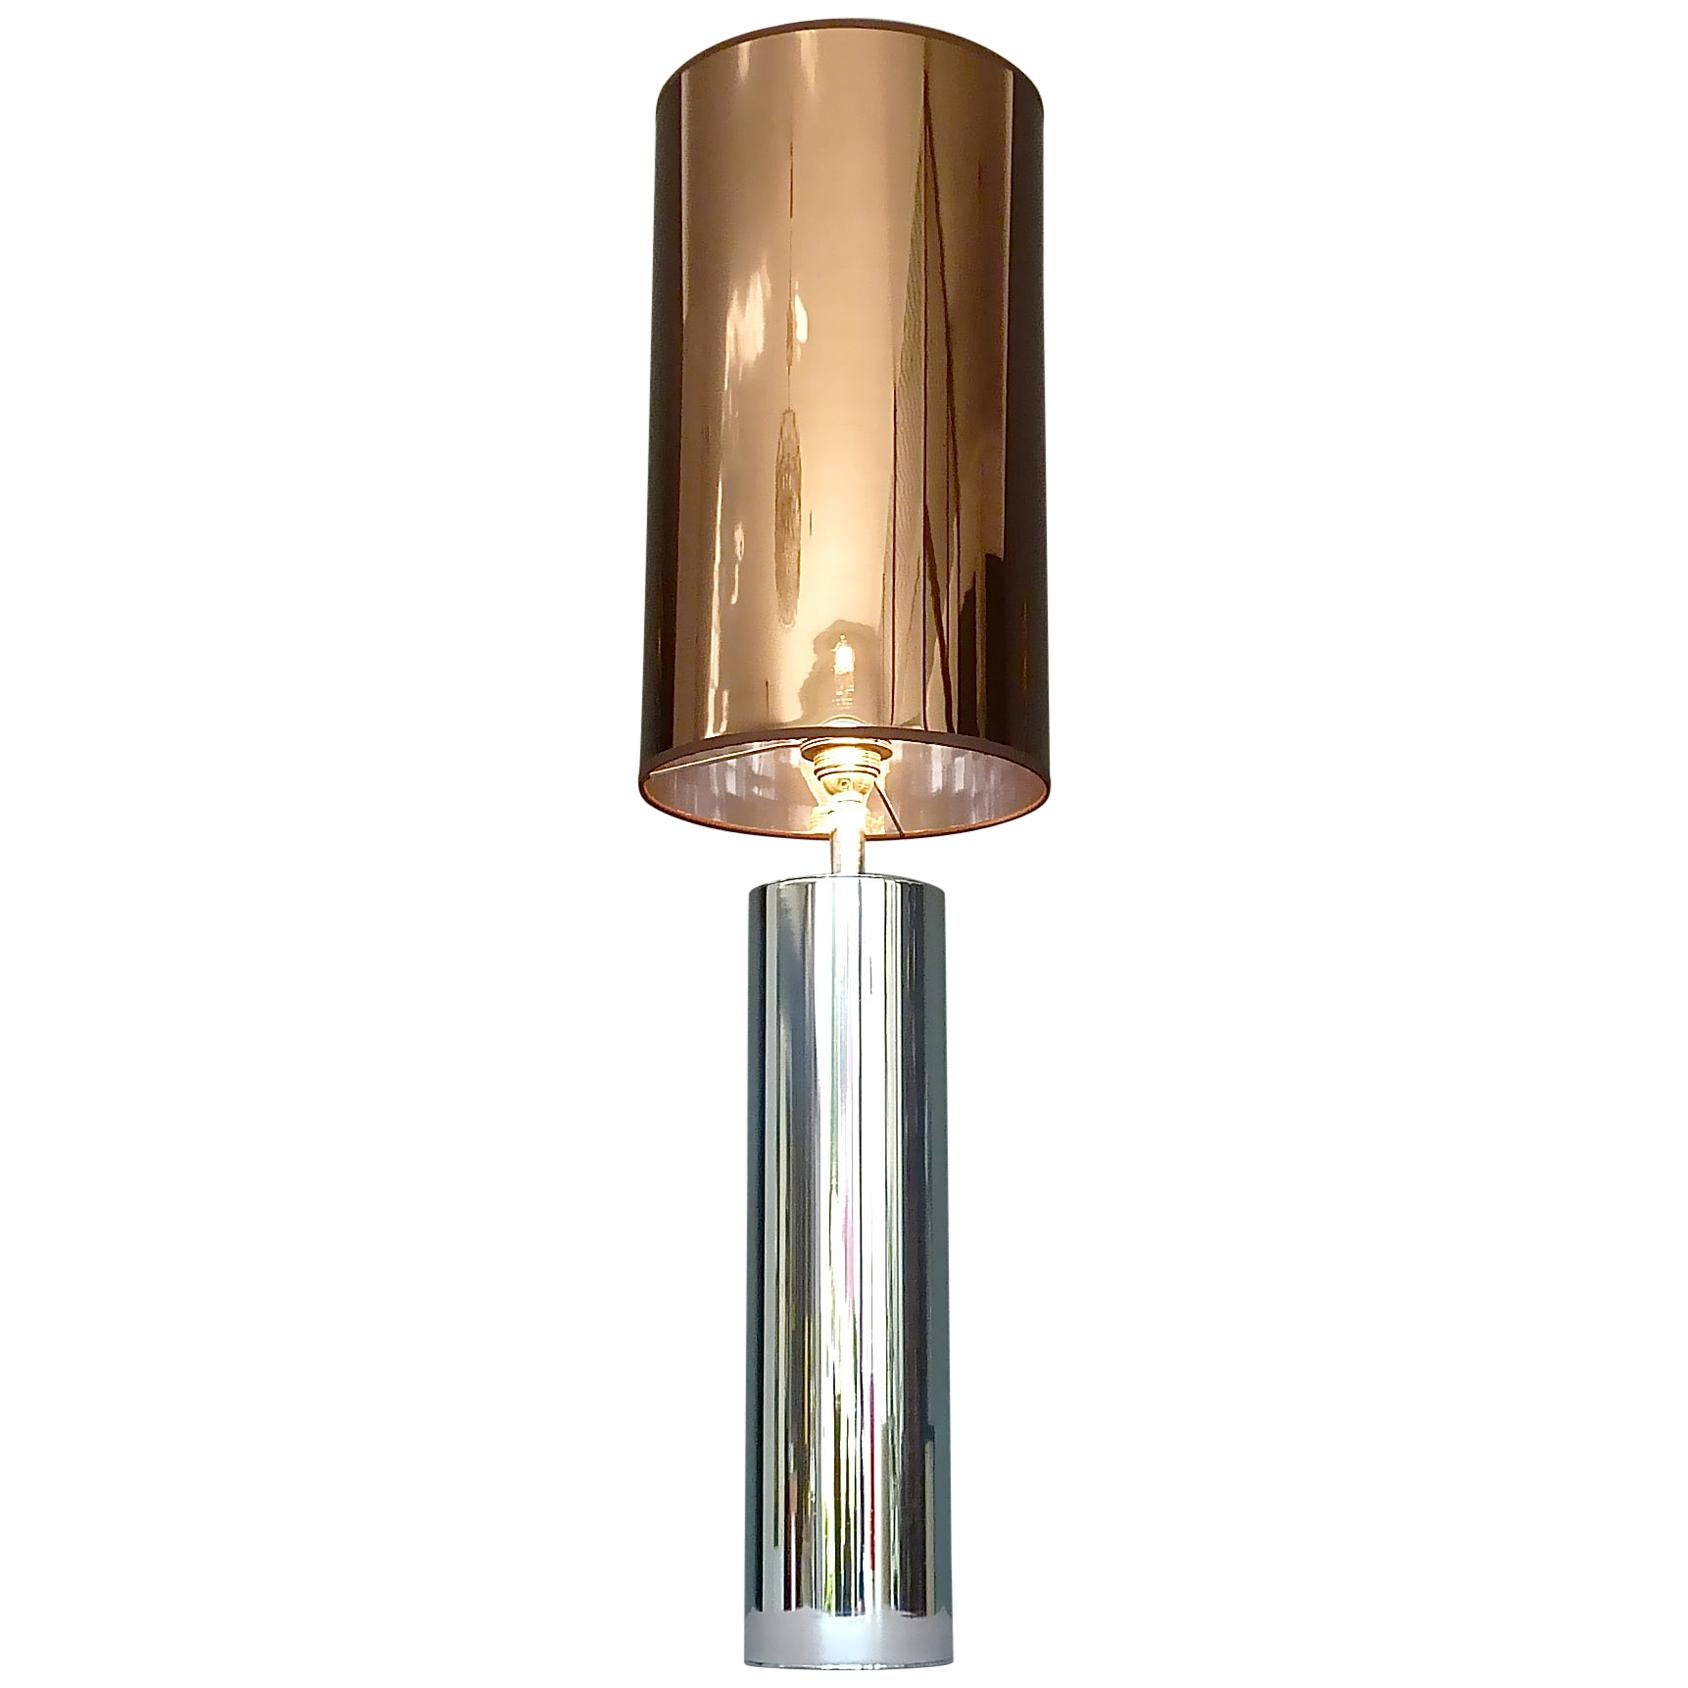 Monumental Chrome Steel Table Lamp Willy Rizzo Cardin Style Bronze Mirror 1970s